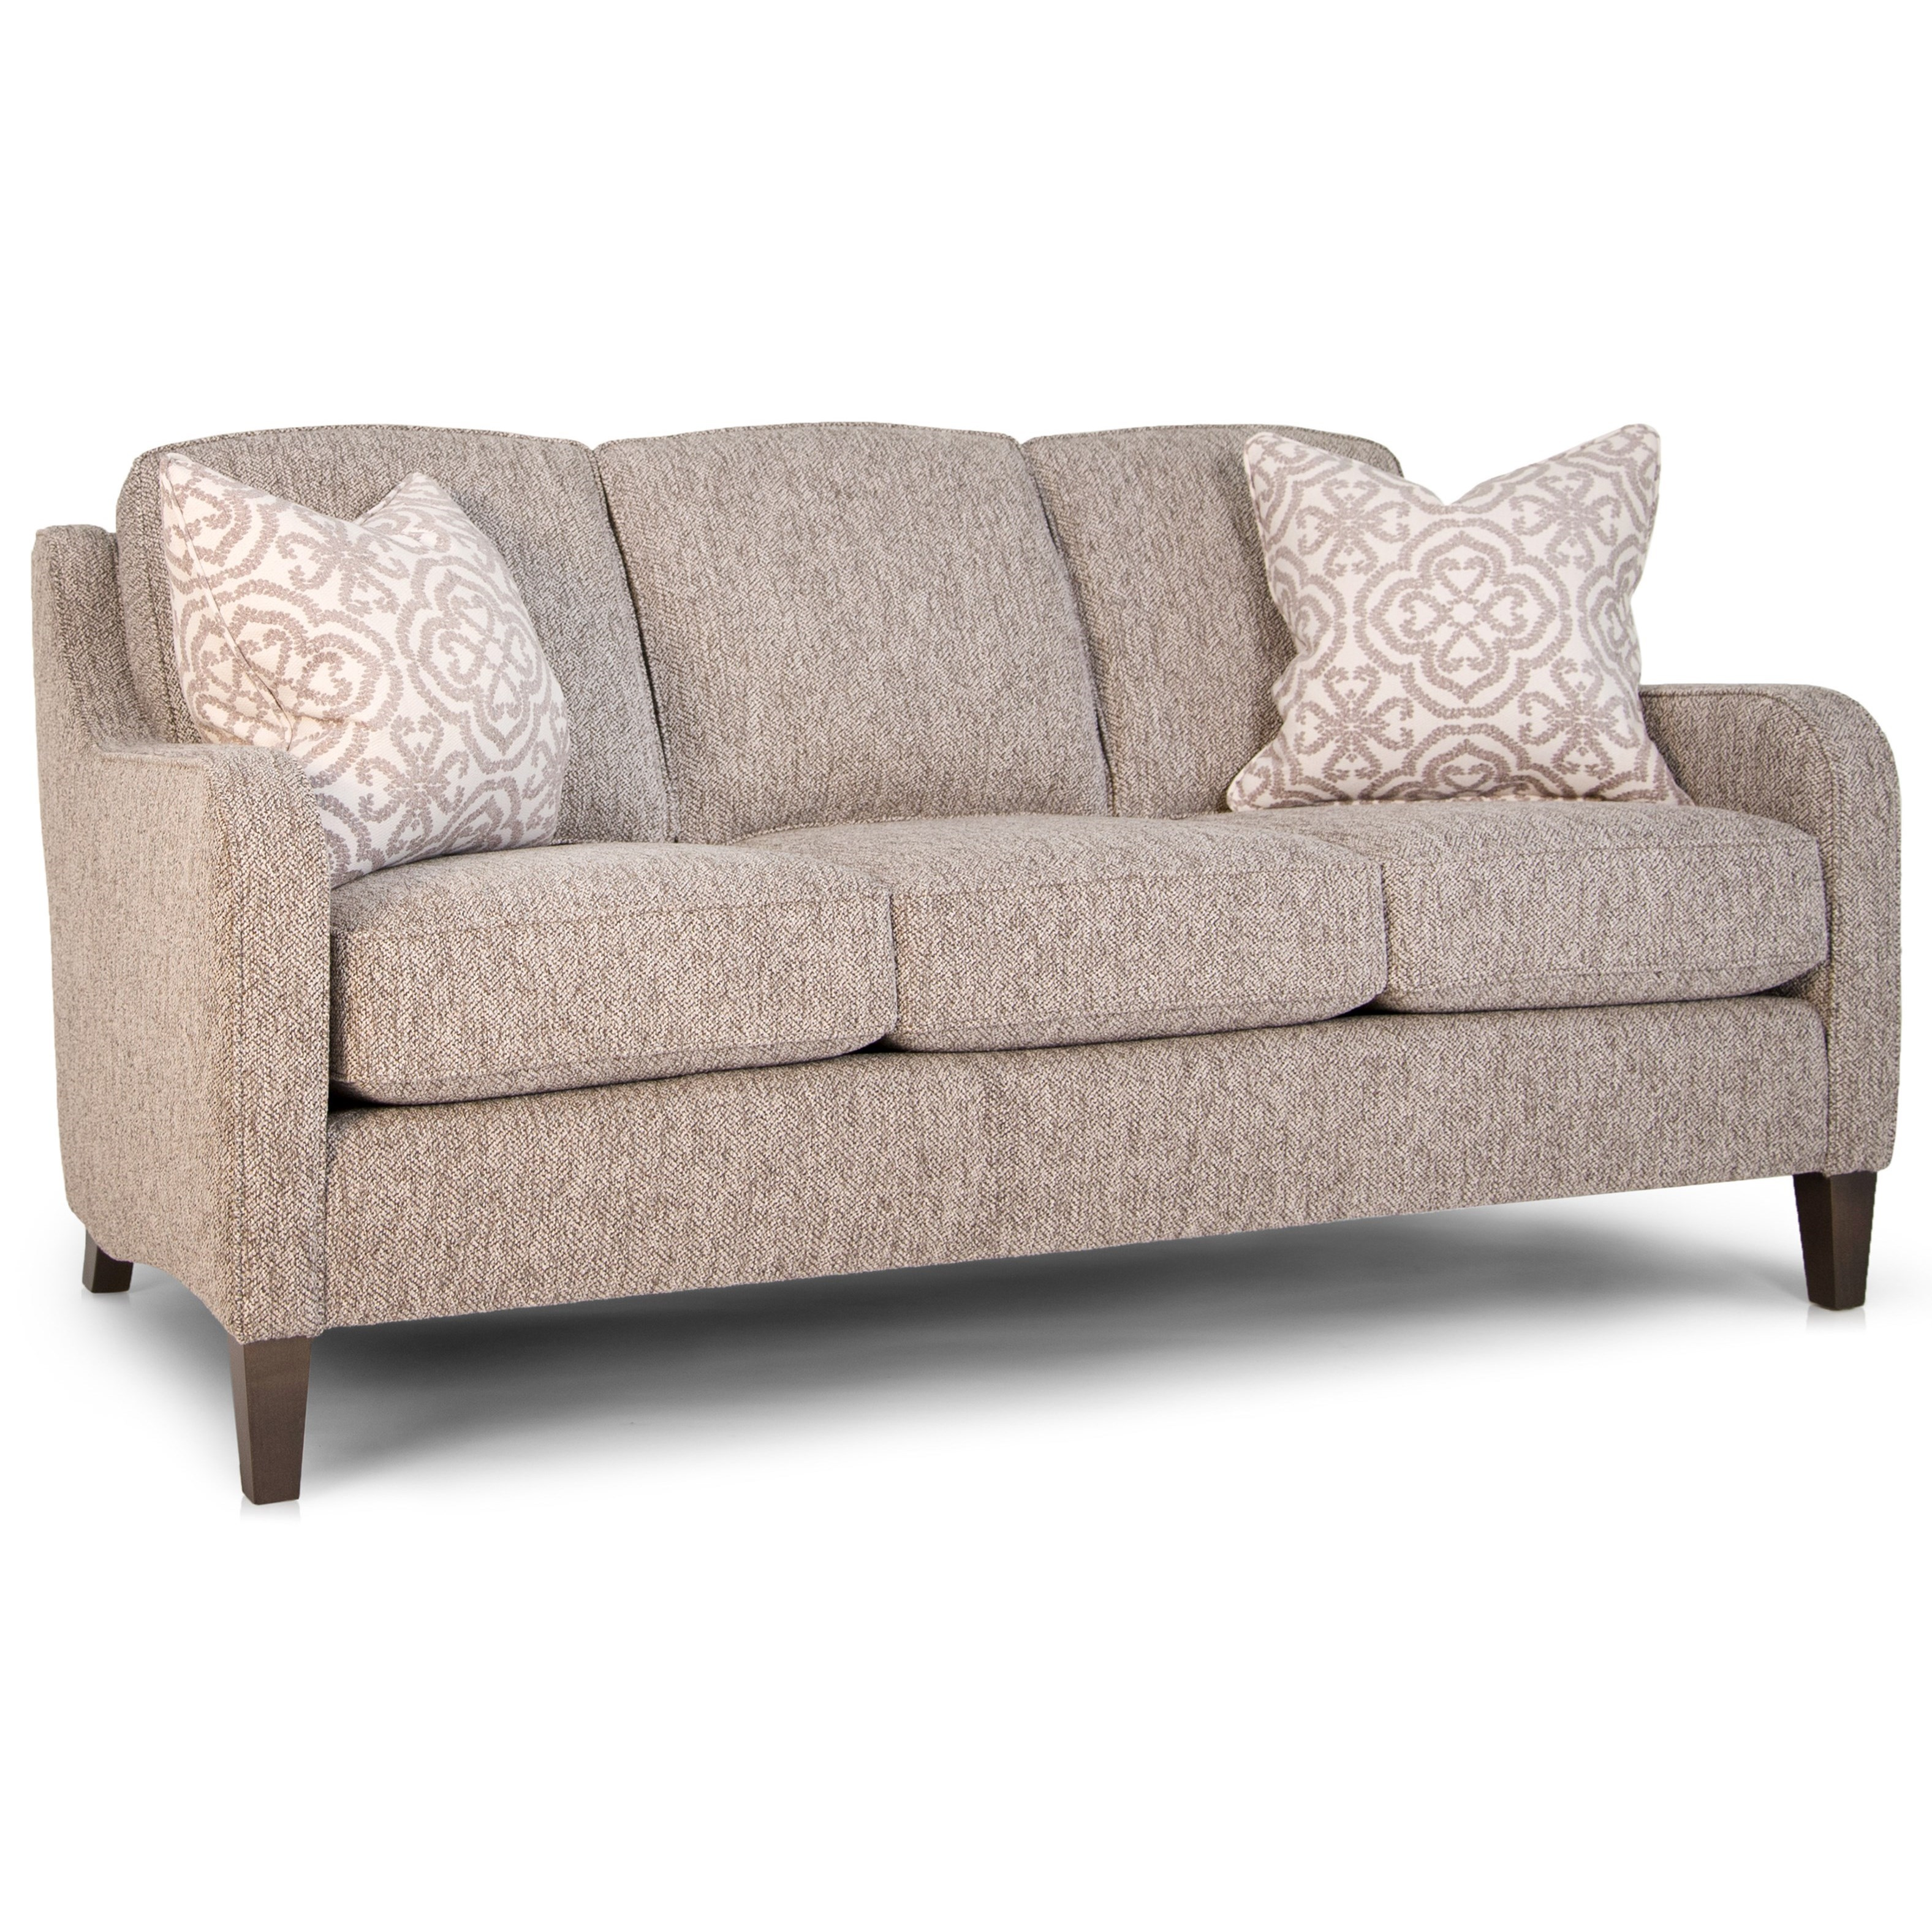 252 Mid Size Sofa by Smith Brothers at Rooms for Less